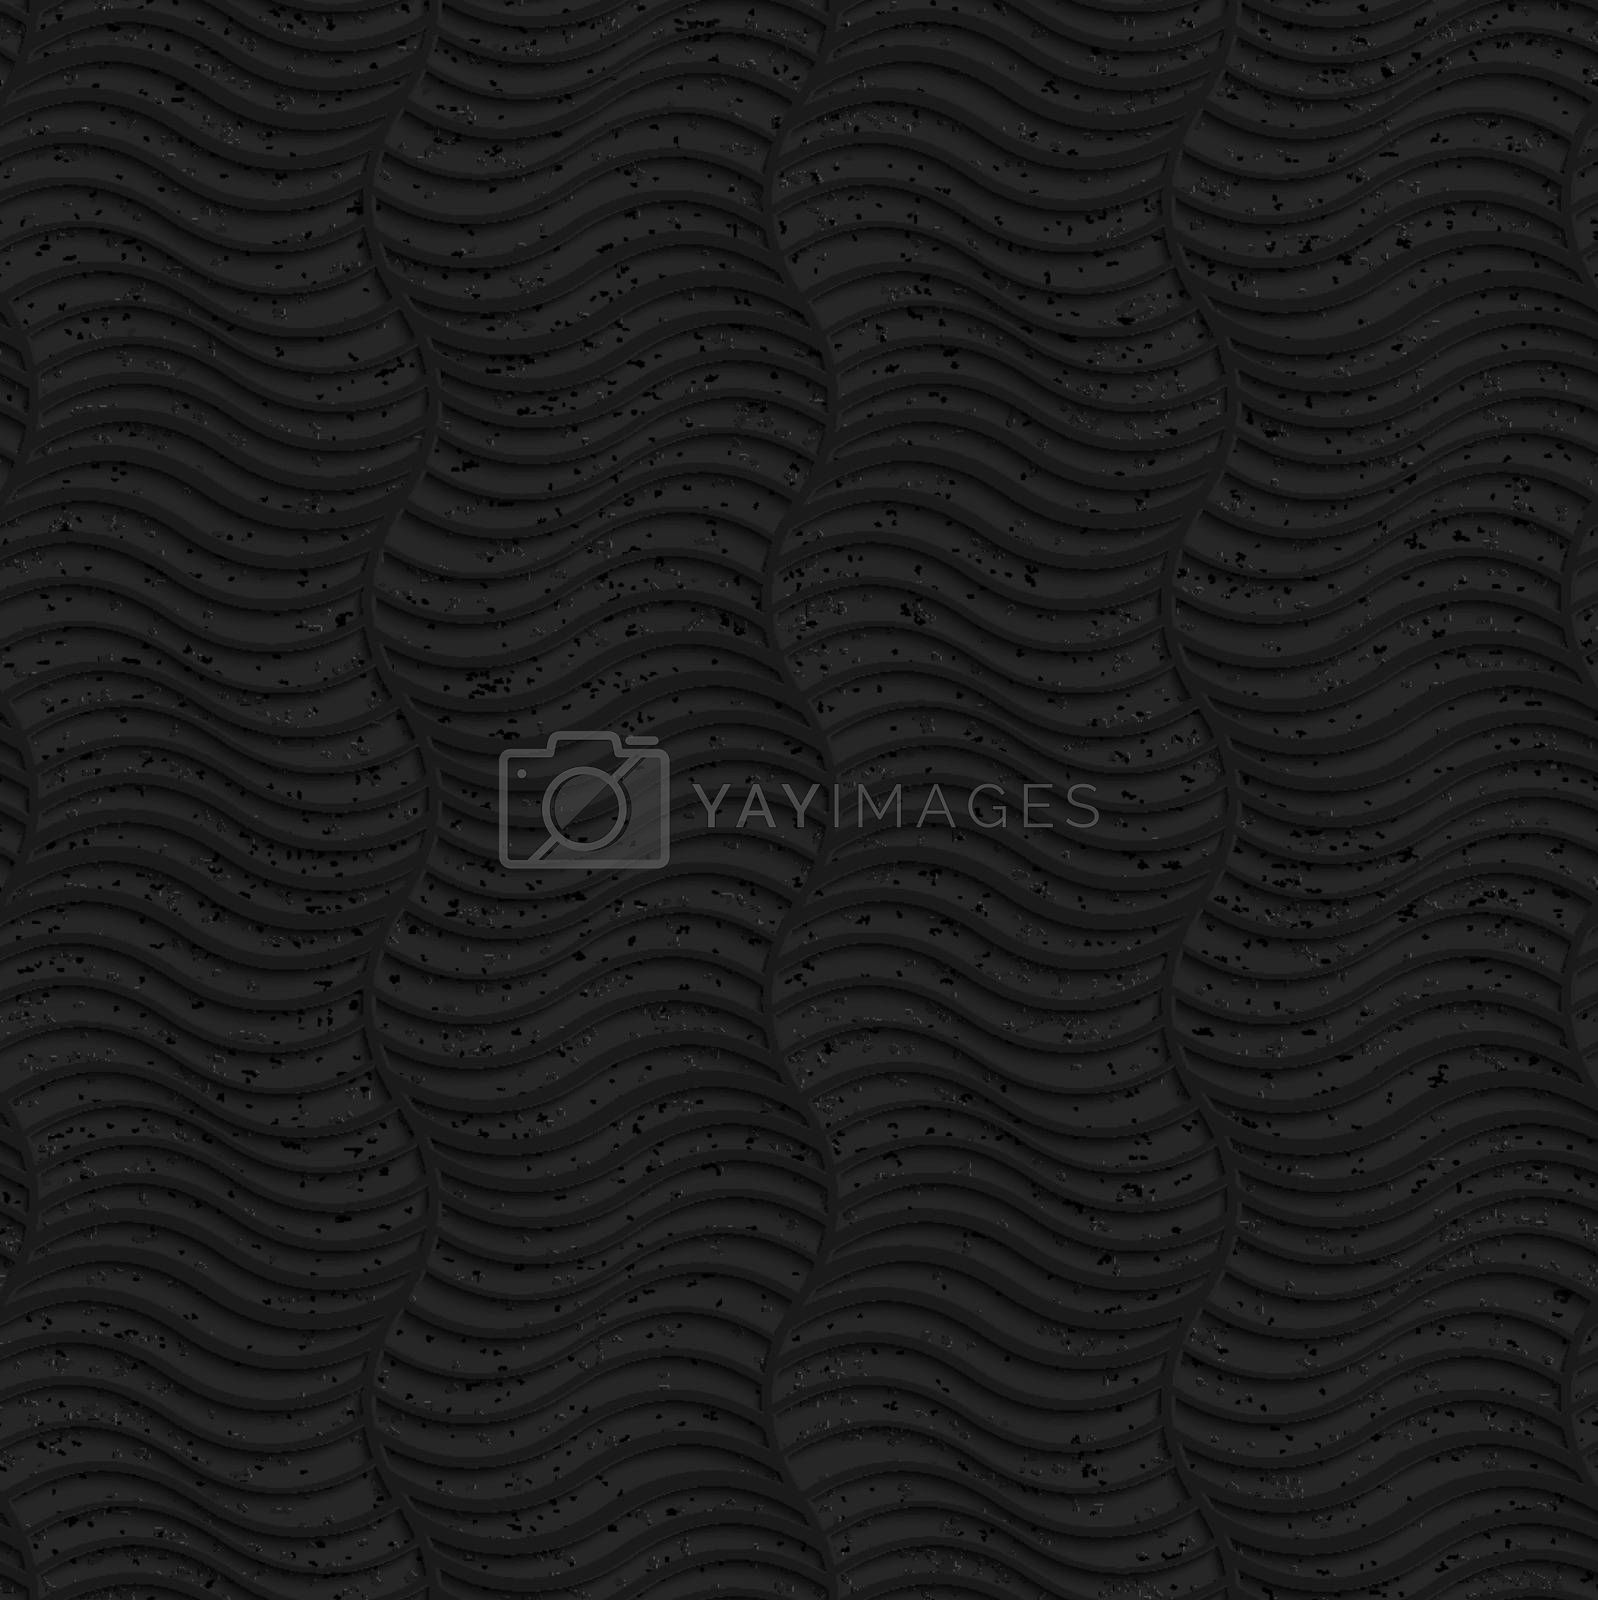 Seamless geometric background. Pattern with 3D texture and realistic shadow.Textured black plastic striped vertical waves.